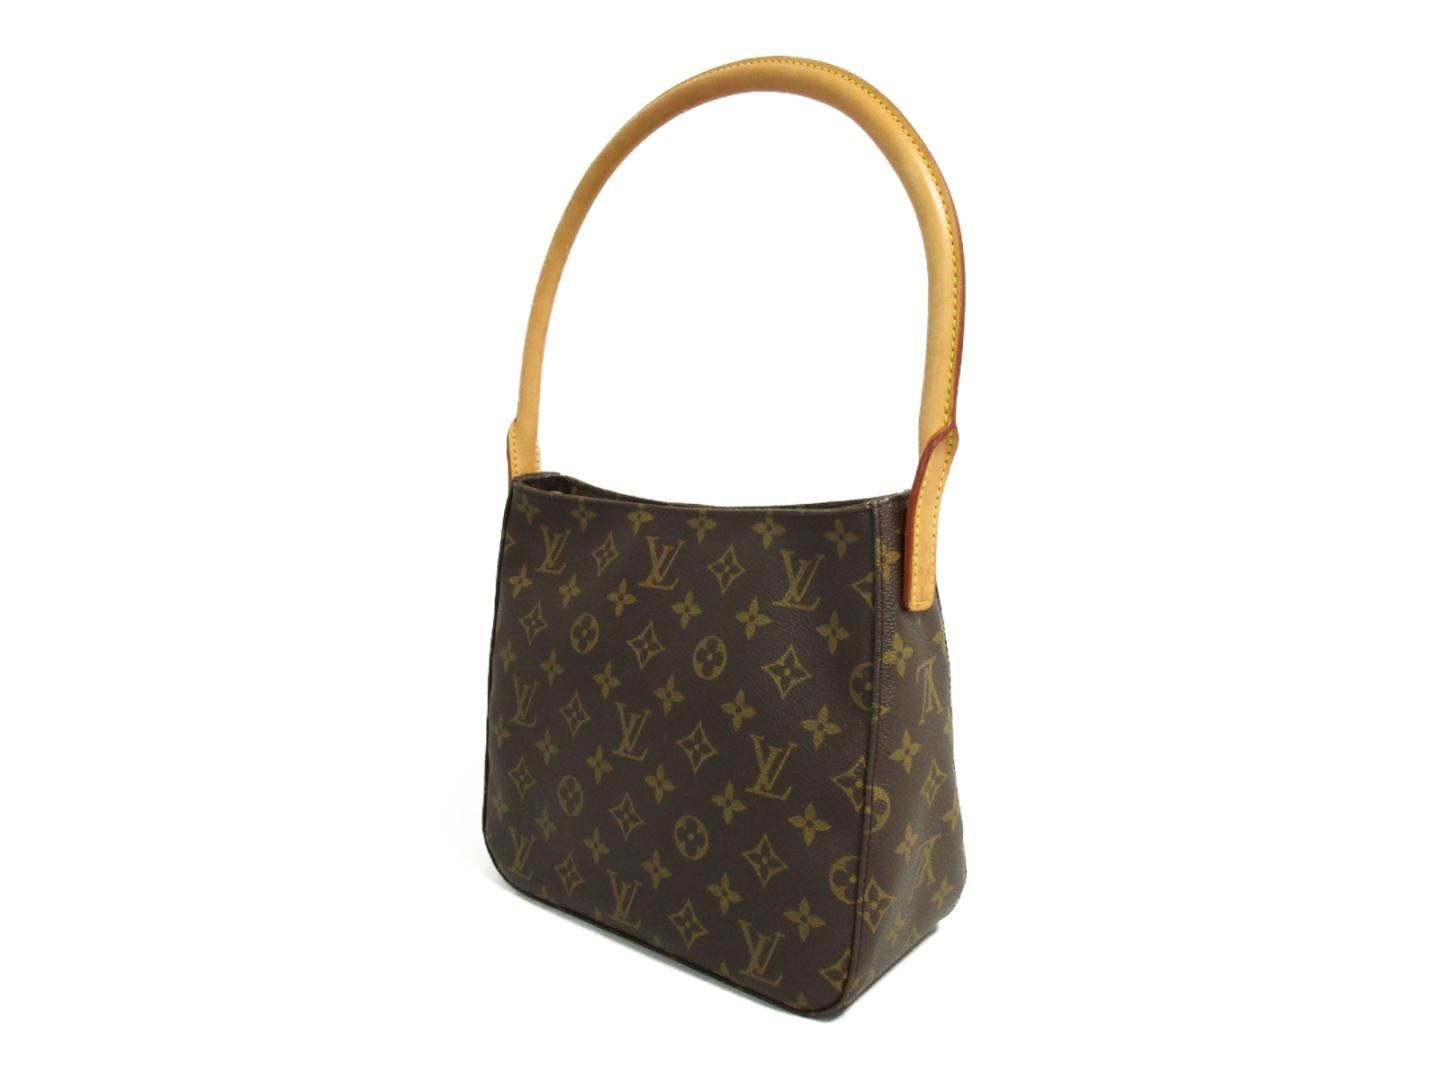 7dec85726f4c Lyst - Louis Vuitton Authentic Looping Mm Shoulder Bag M51146 Used ...